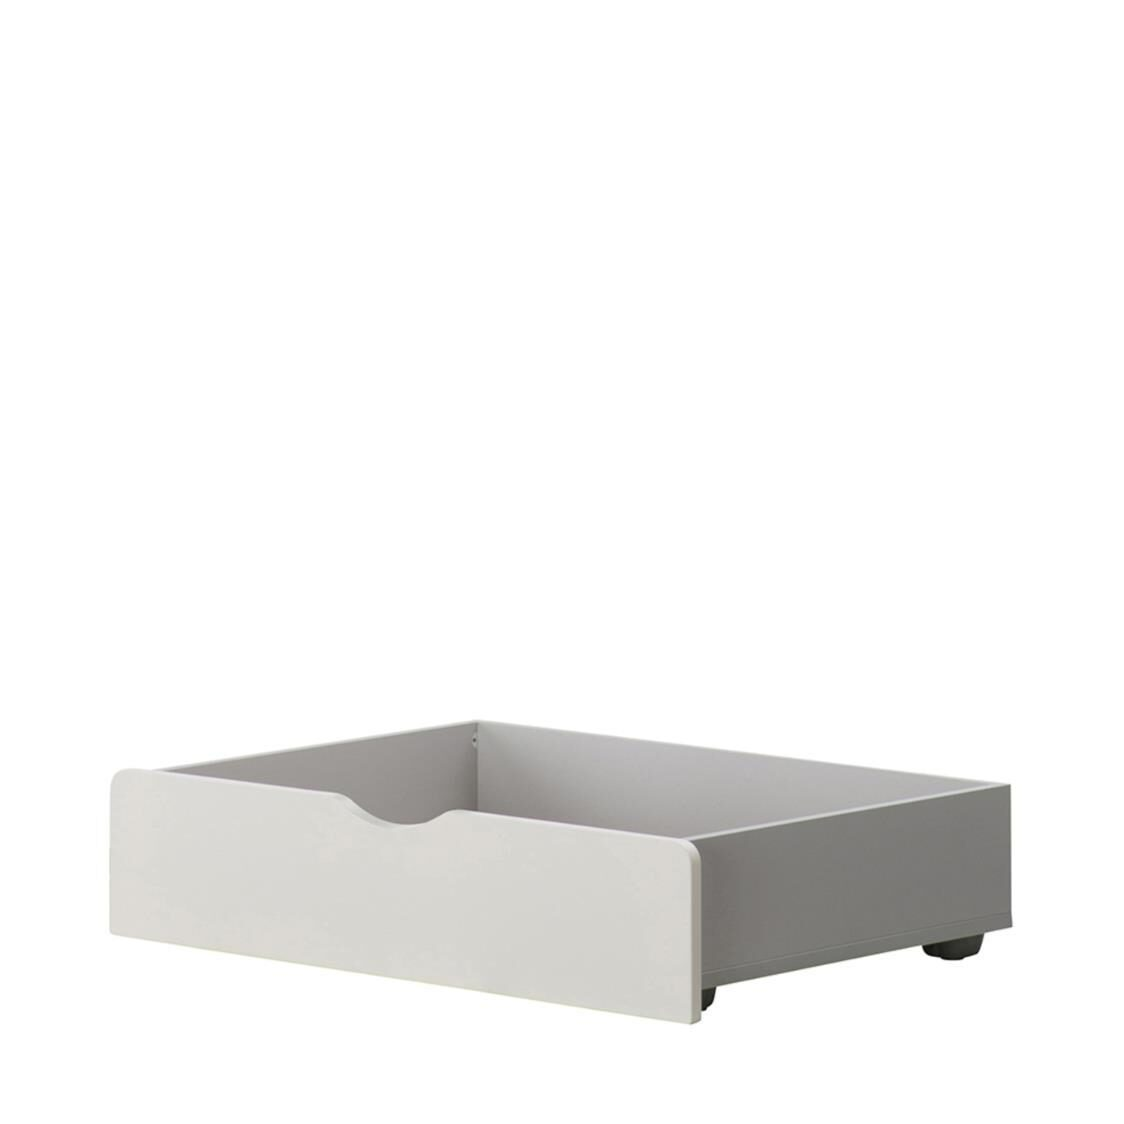 Tinkle Pop Bed Drawer IV Ivory